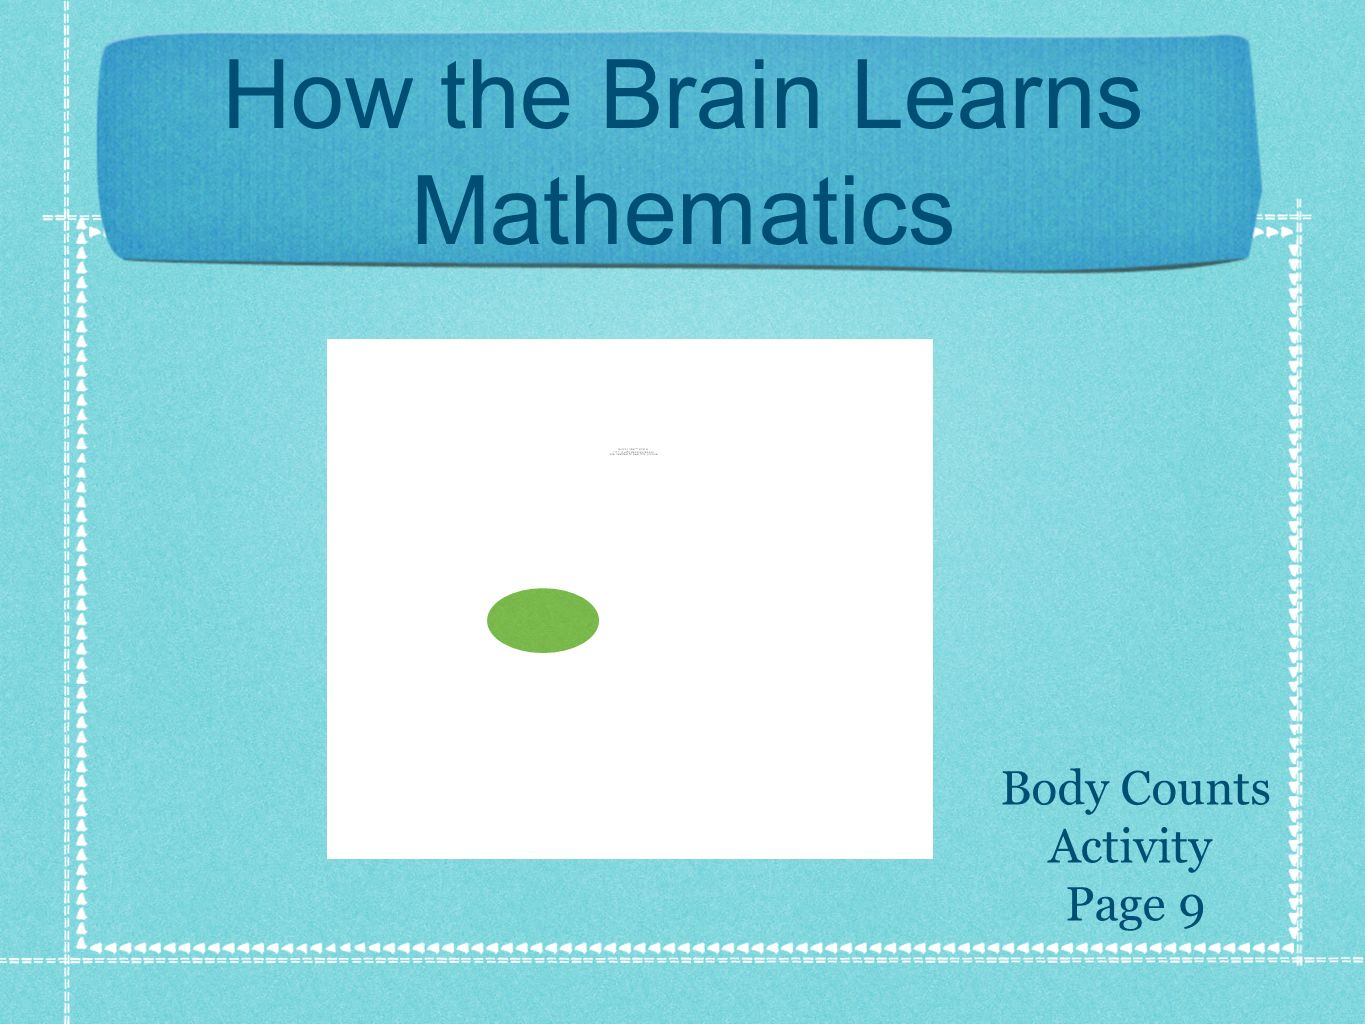 How the Brain Learns Mathematics Body Counts Activity Page 9